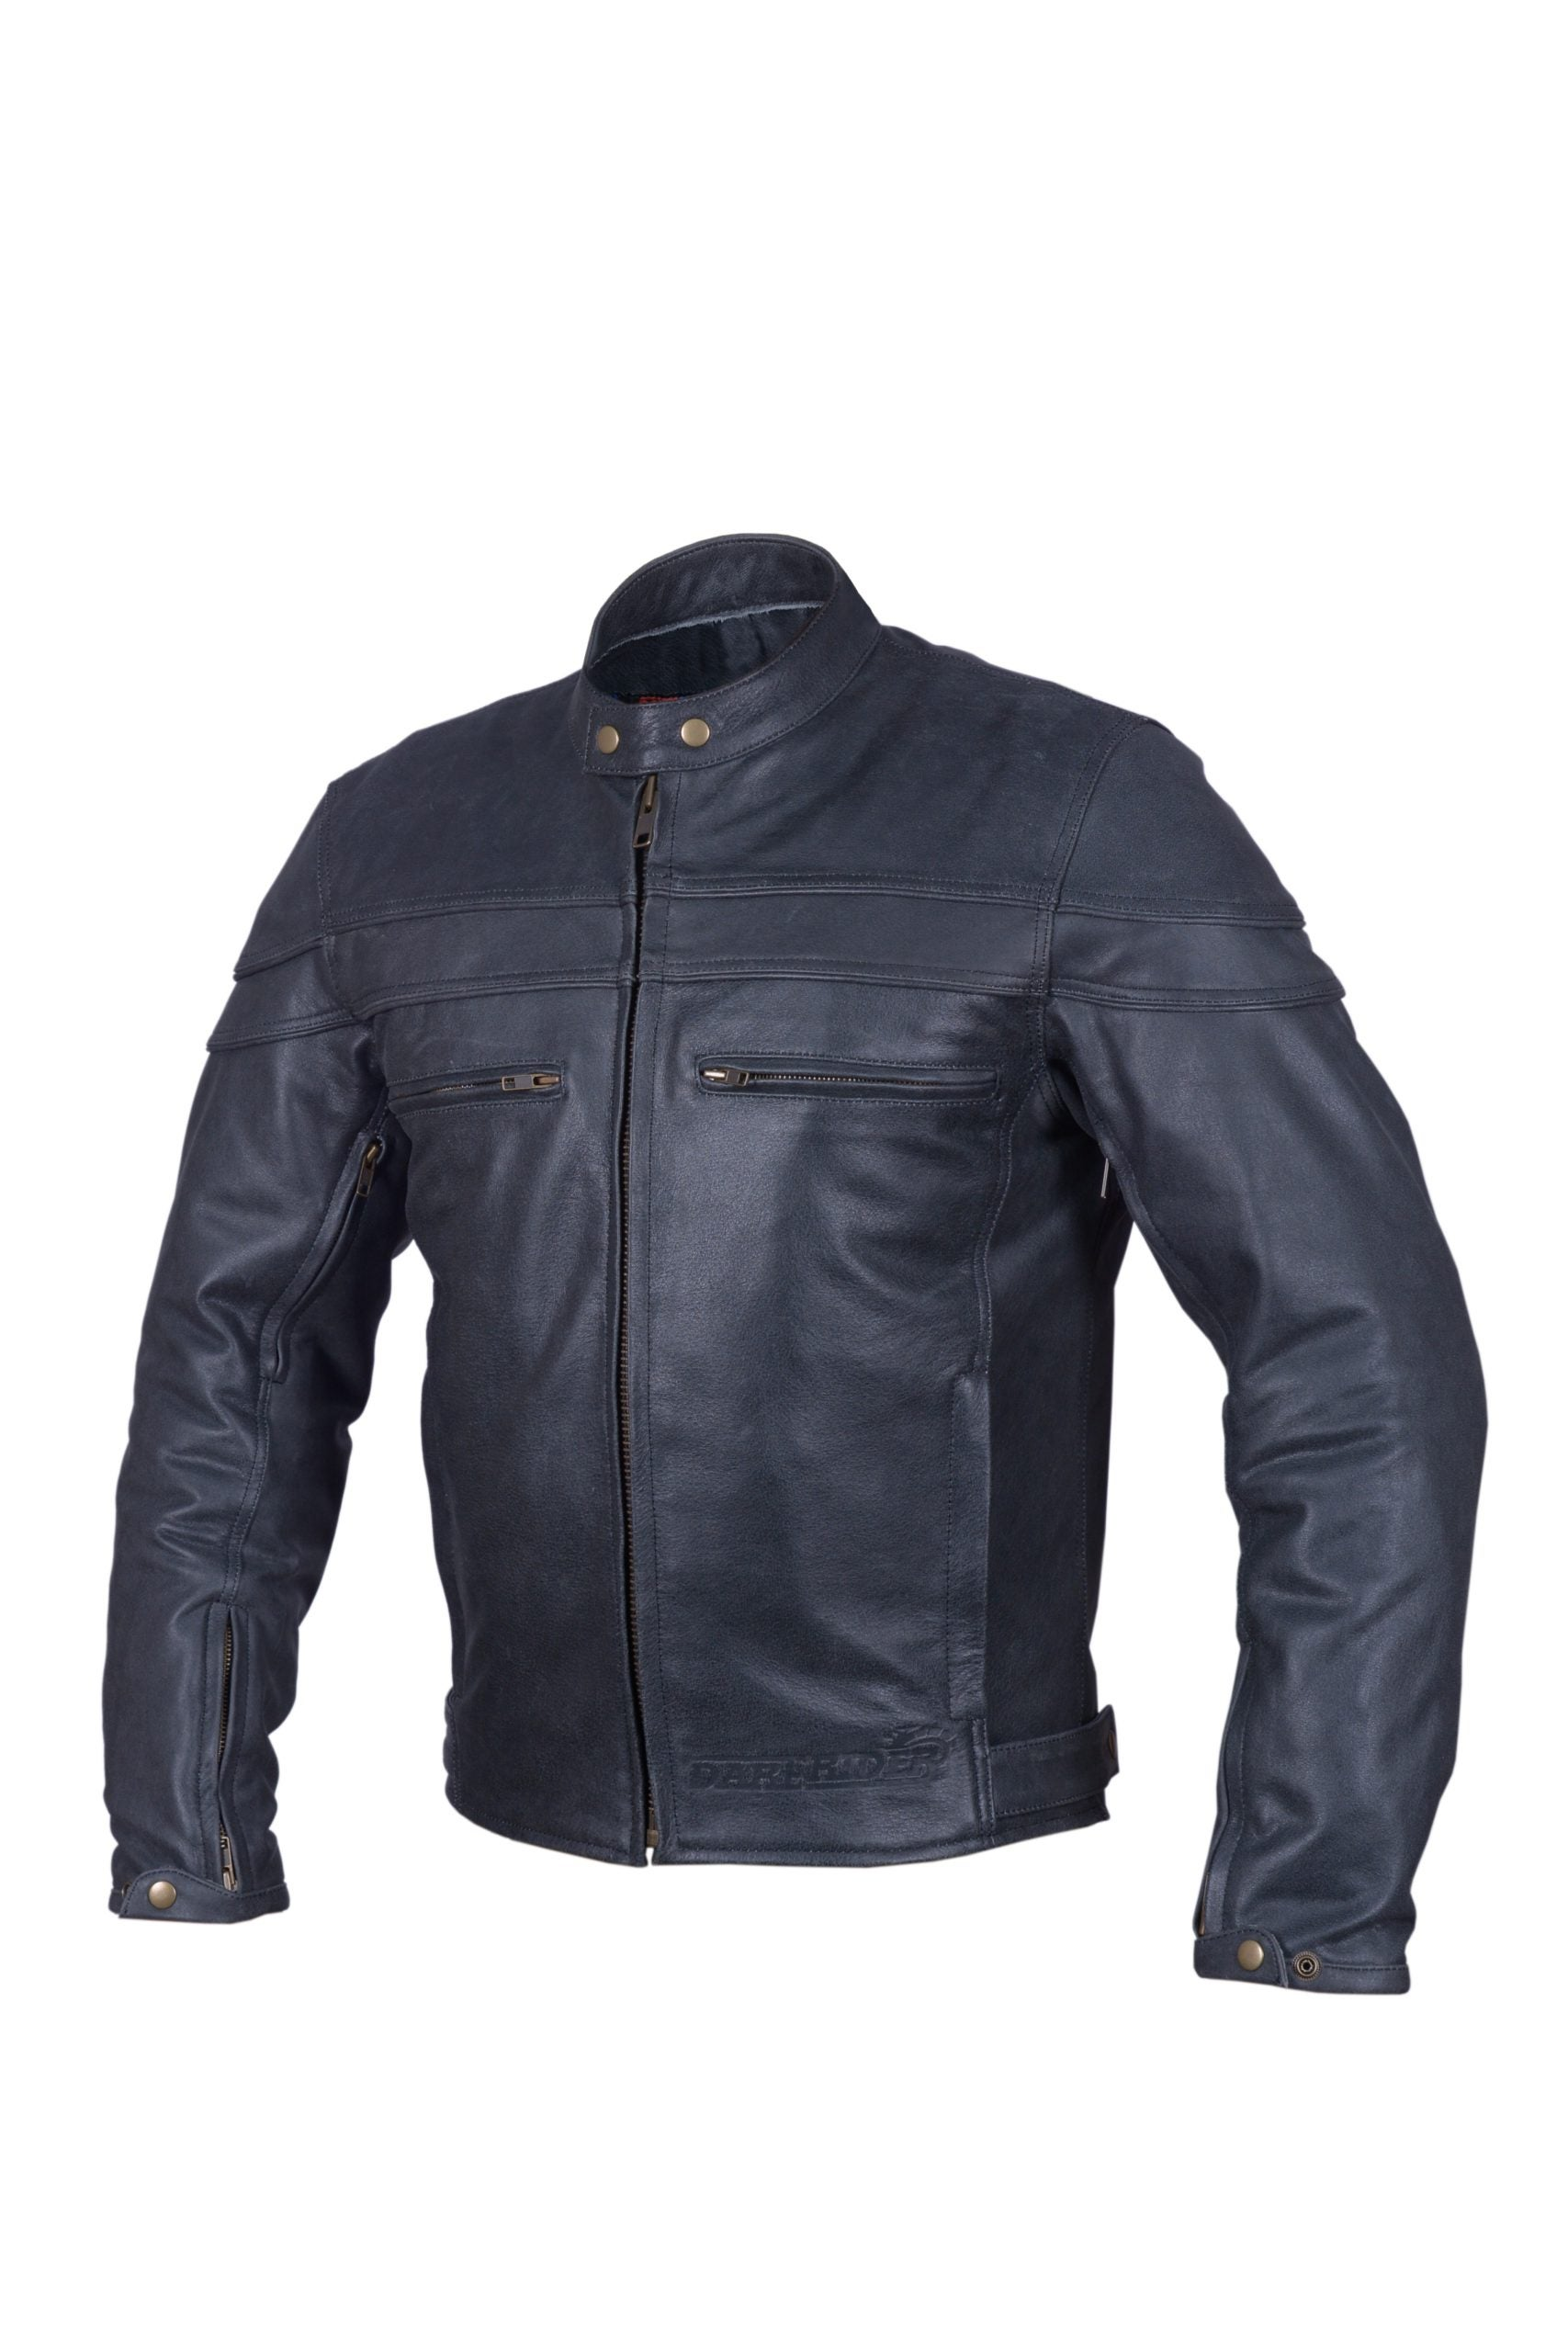 Dare Rider™ Cowhide Distressed Leather Mens Cafe Racer Jacket